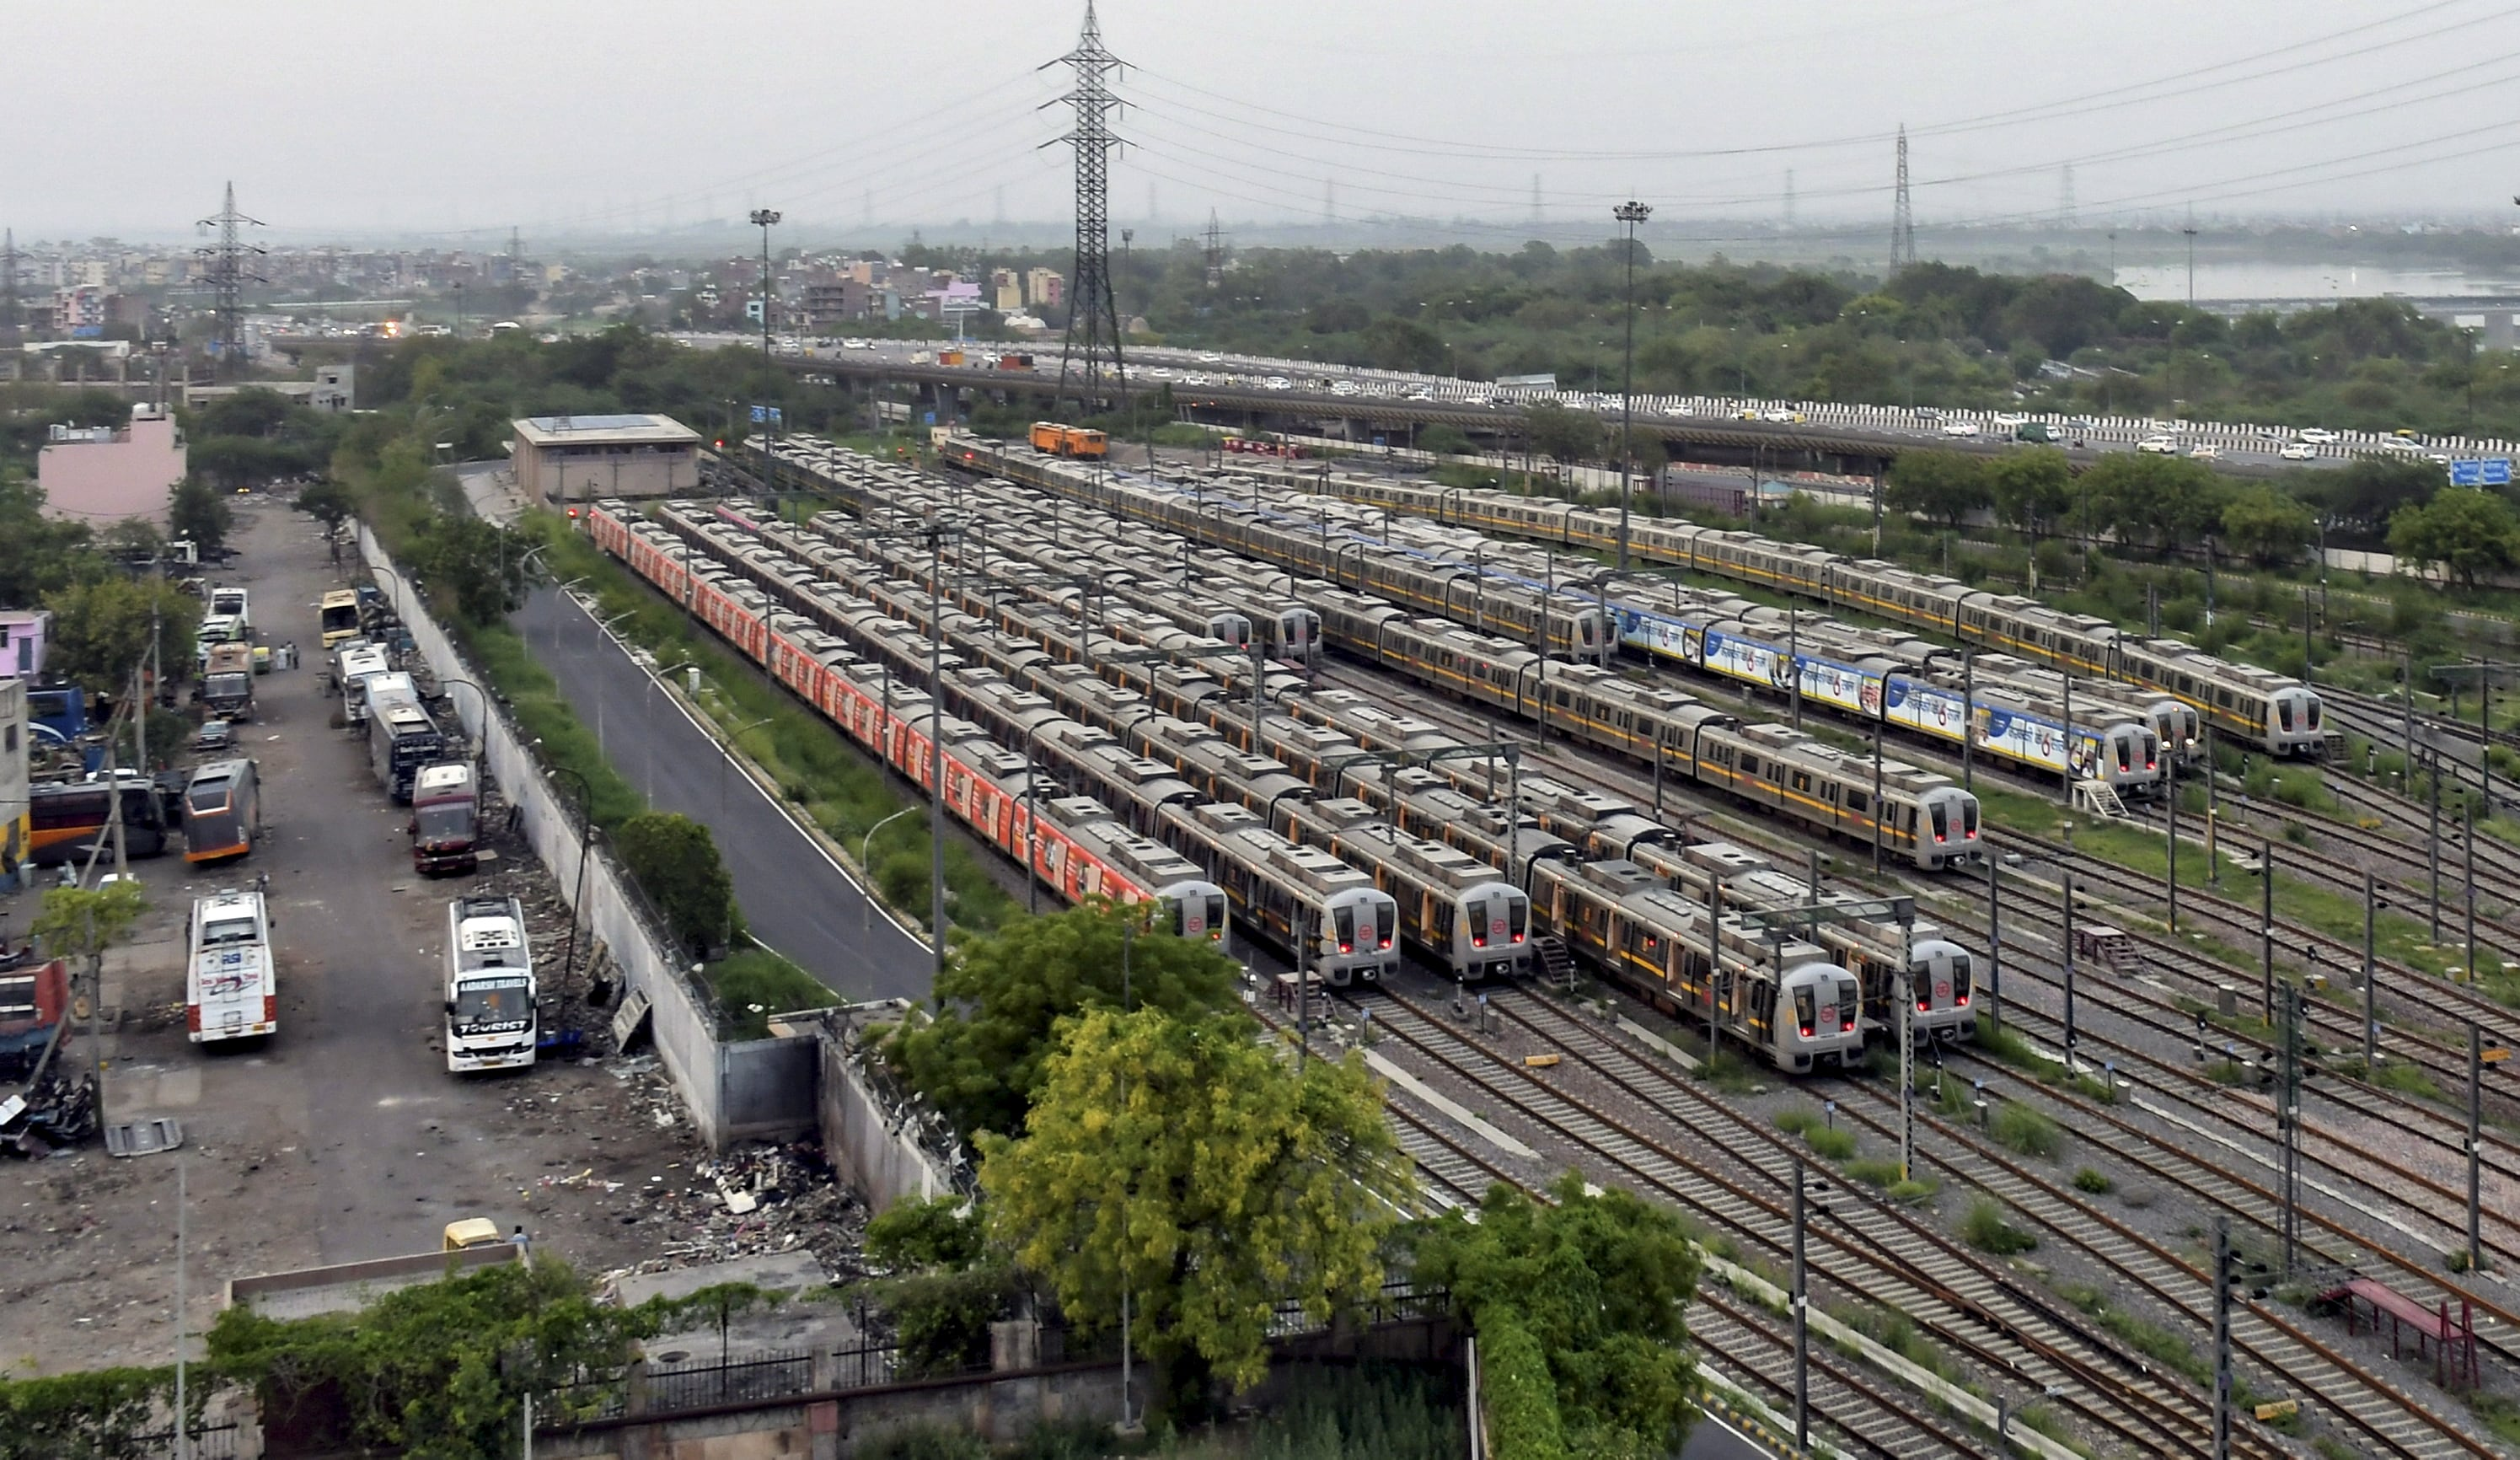 Metro trains parked at Timarpur Depot ahead of the lifting of Covid-induced restrictions, in New Delhi, on Sunday, June 6, 2021. (PTI)